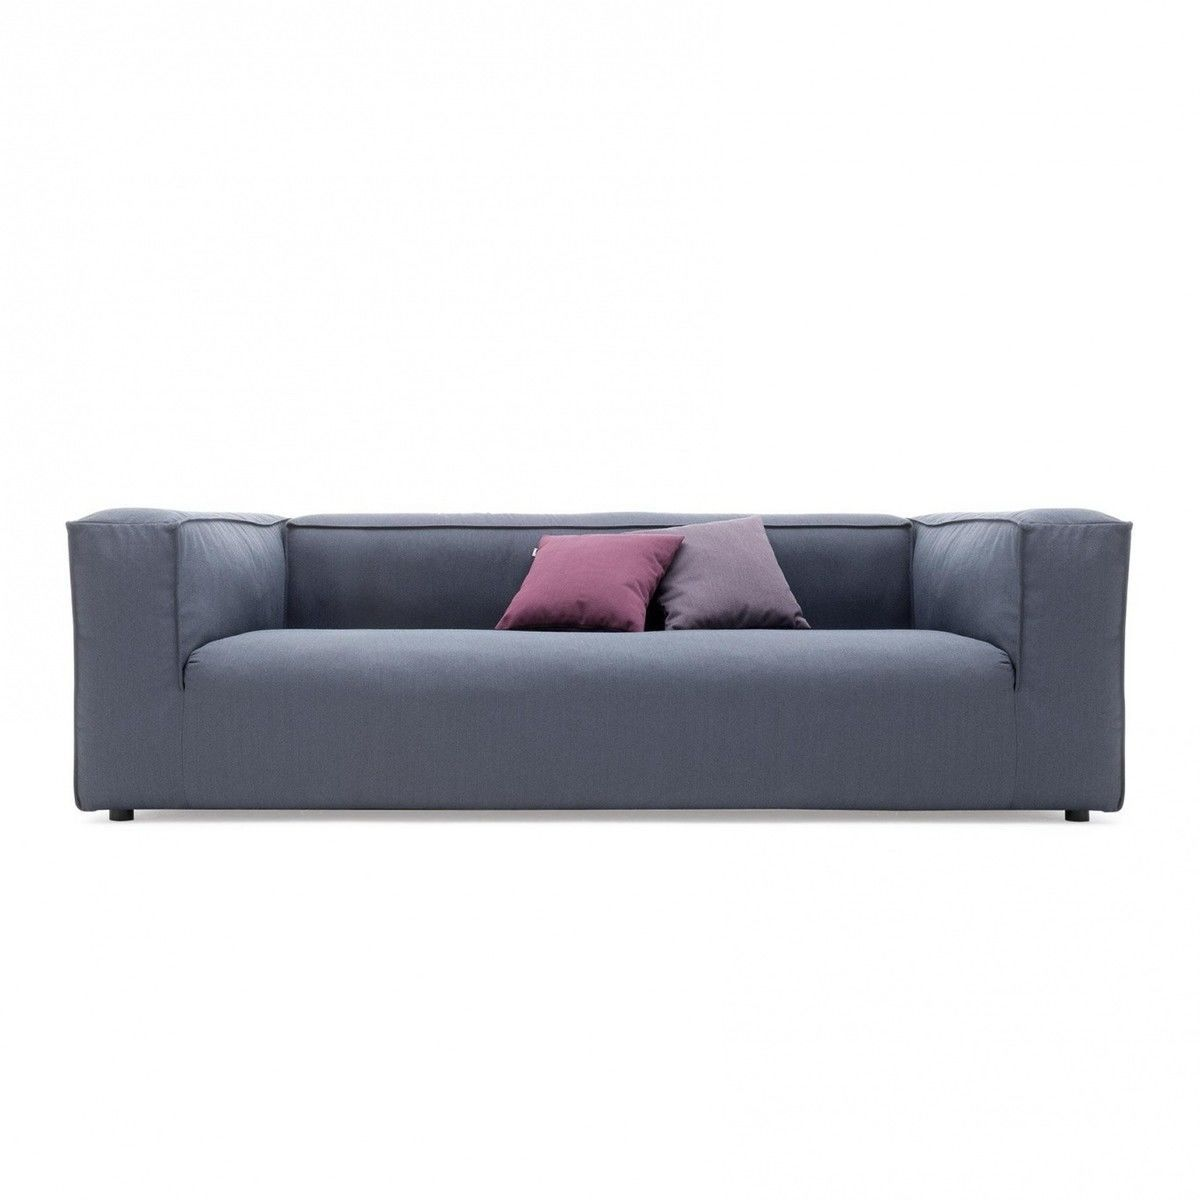 Freistil 175 3 sitzer sofa freistil rolf benz for Couch benz